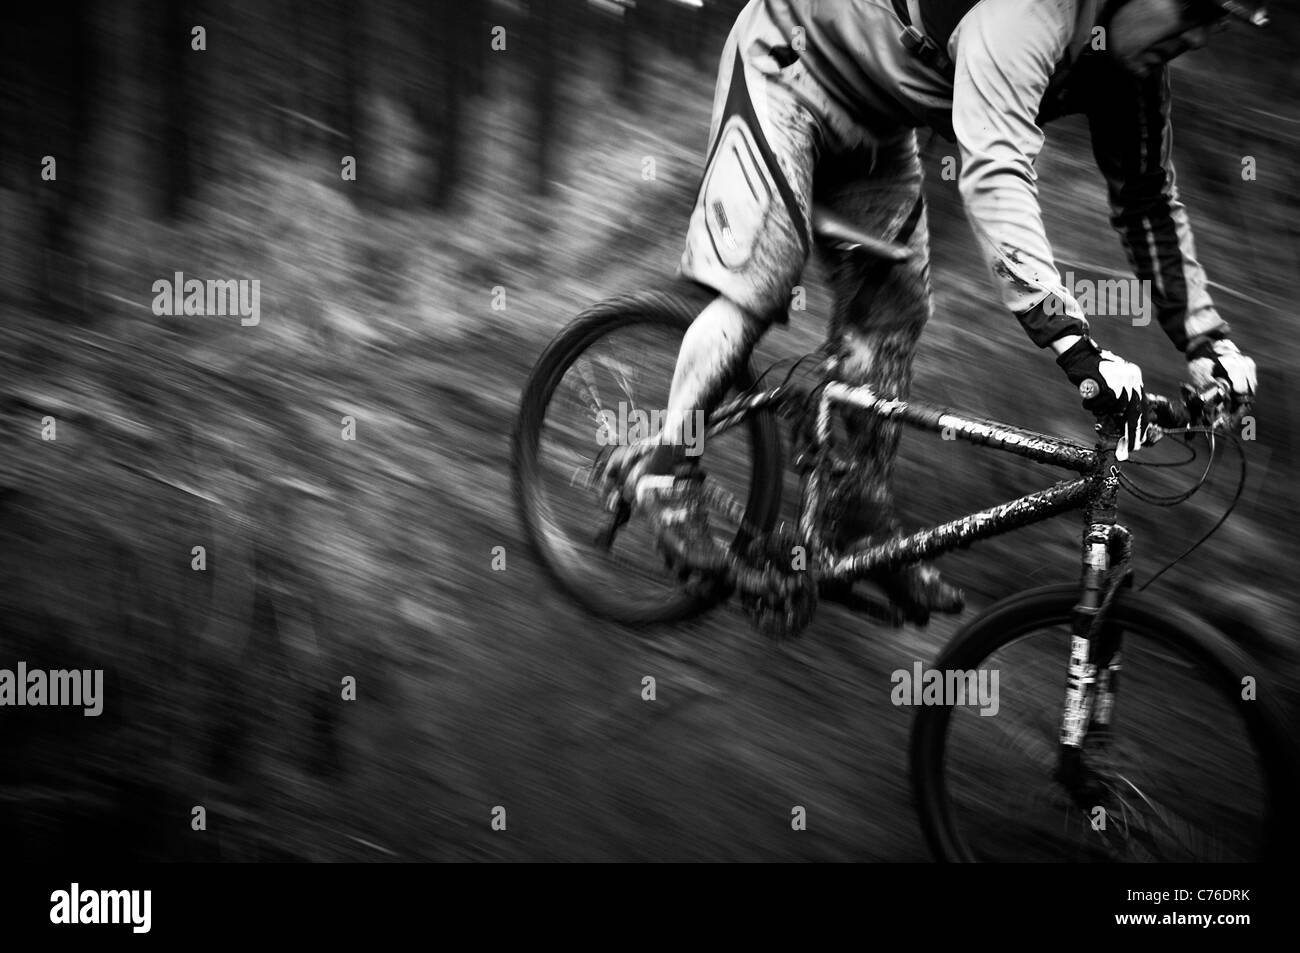 Mud covered mountain bike and rider on single track Black and White - Stock Image